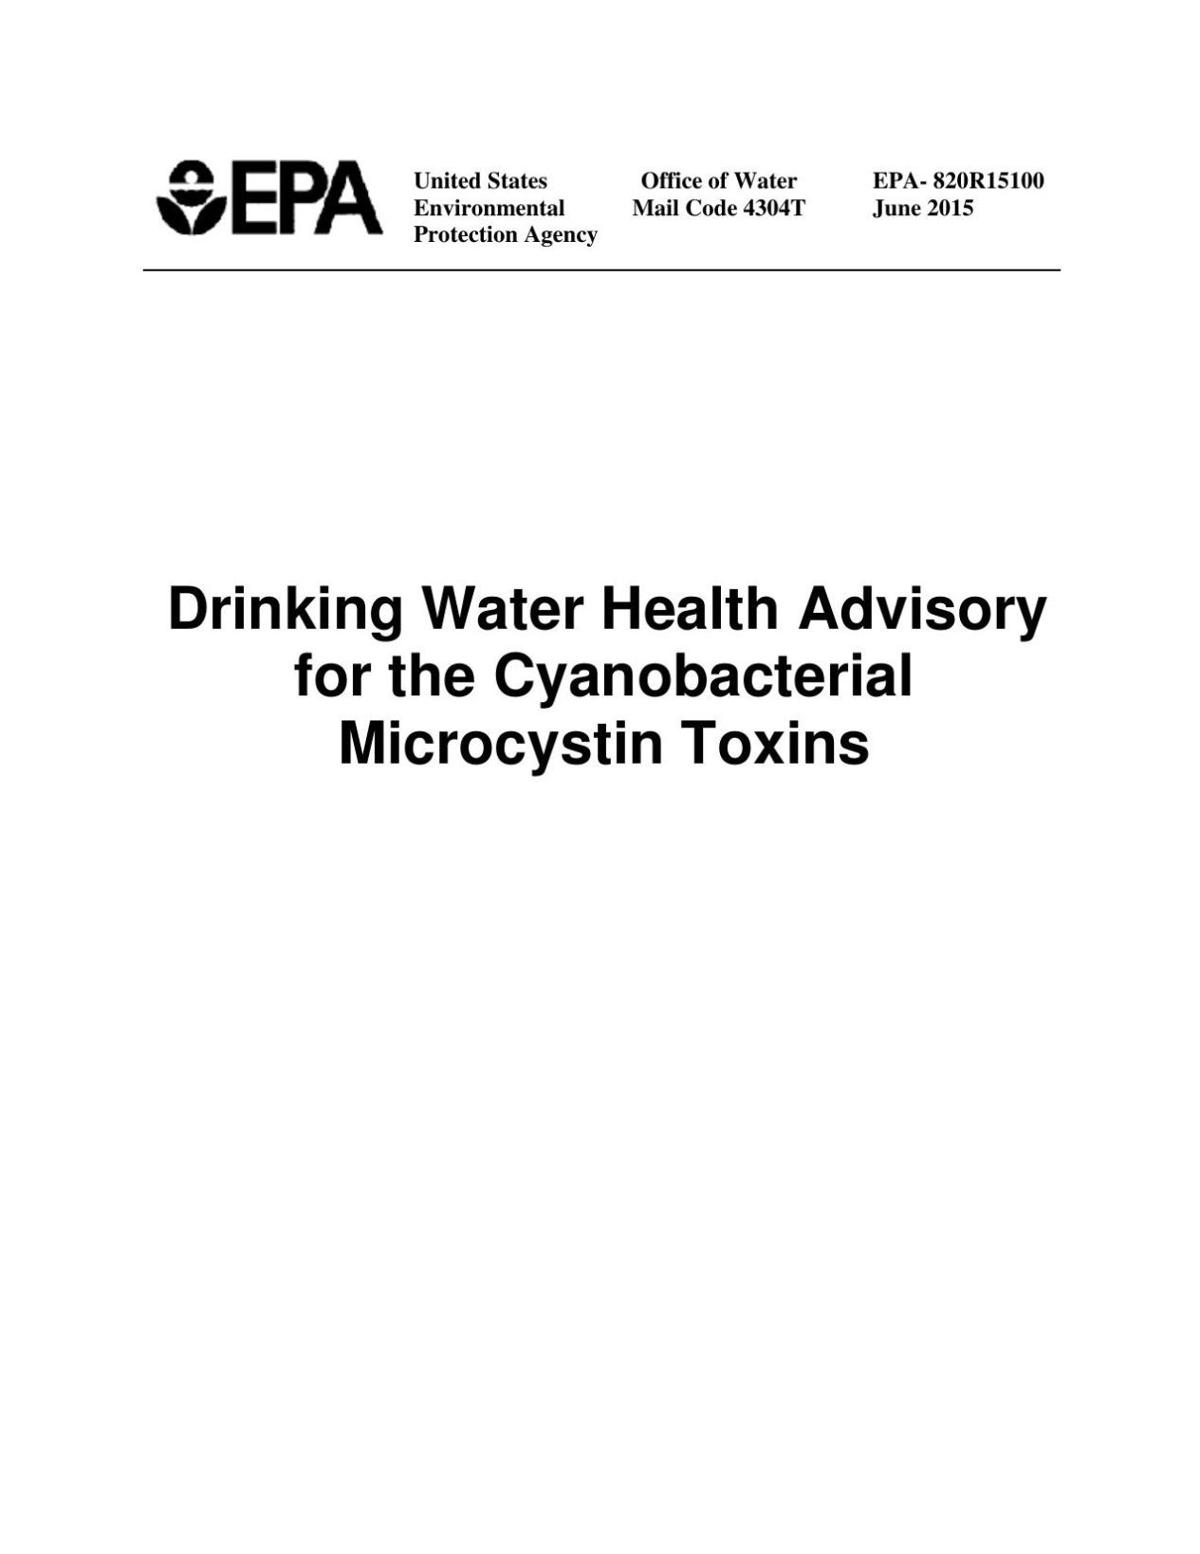 EPA: Drinking water health advisory for micyrocystins